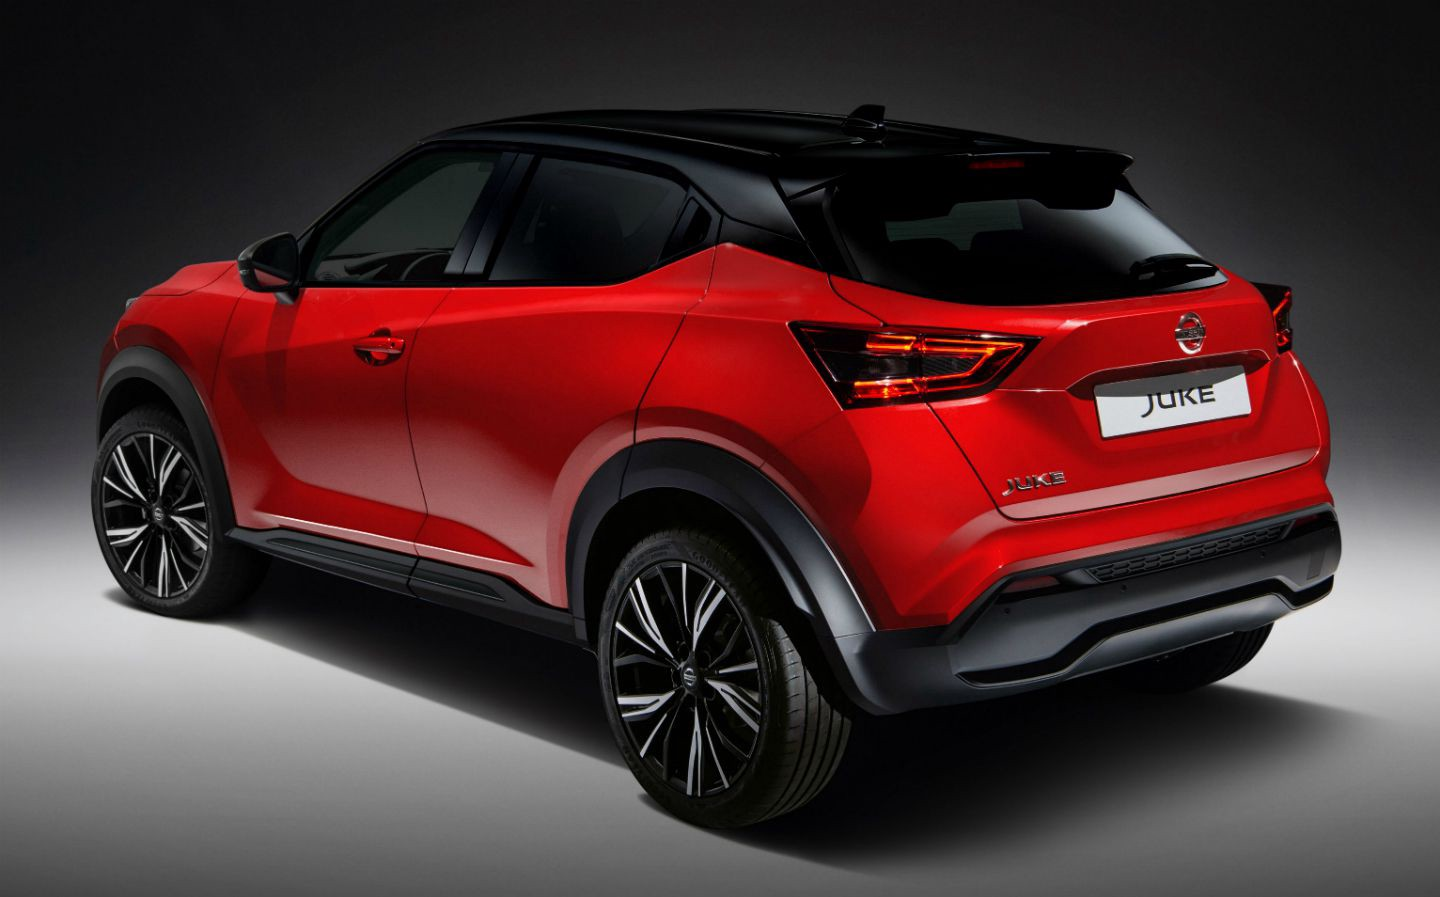 2020 Nissan Juke Nissan S Boldly Styled Baby Suv Is Back By Nissan Stories Medium